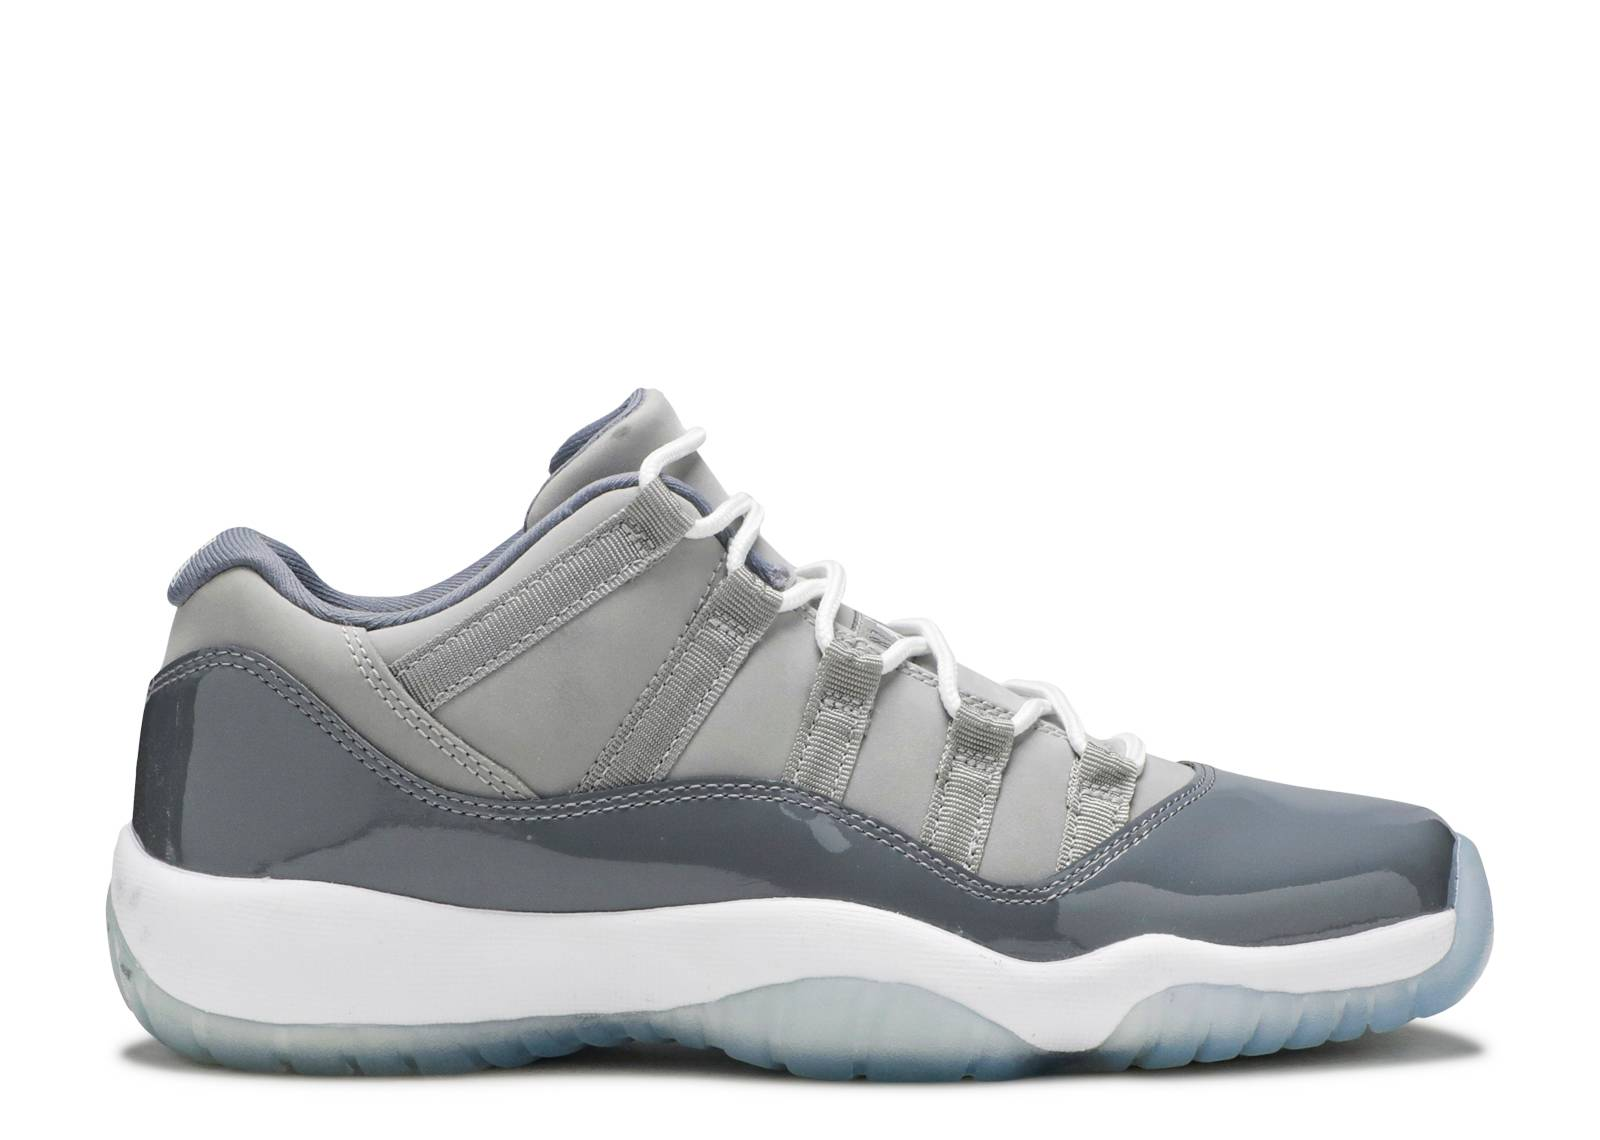 check out 360f0 a2812 air jordan 11 retro low bg (gs)